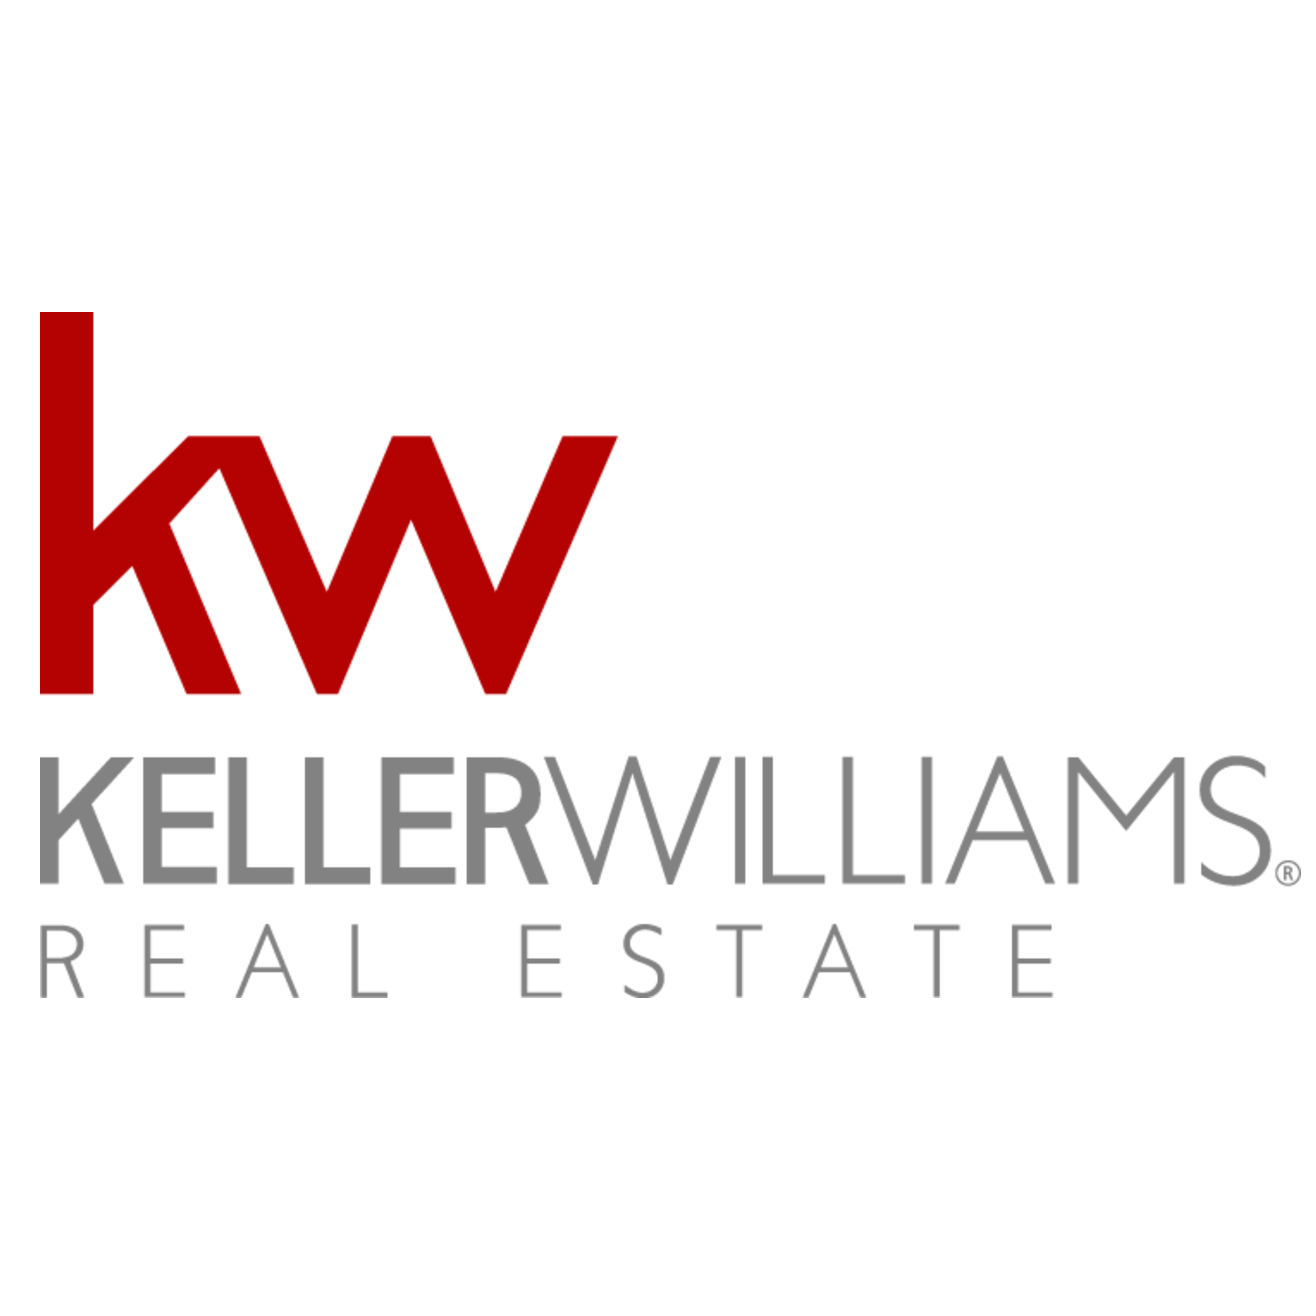 Tom Roth Home Sales | Keller Williams Real Estate - Allentown, PA 18104 - (484)225-9942 | ShowMeLocal.com